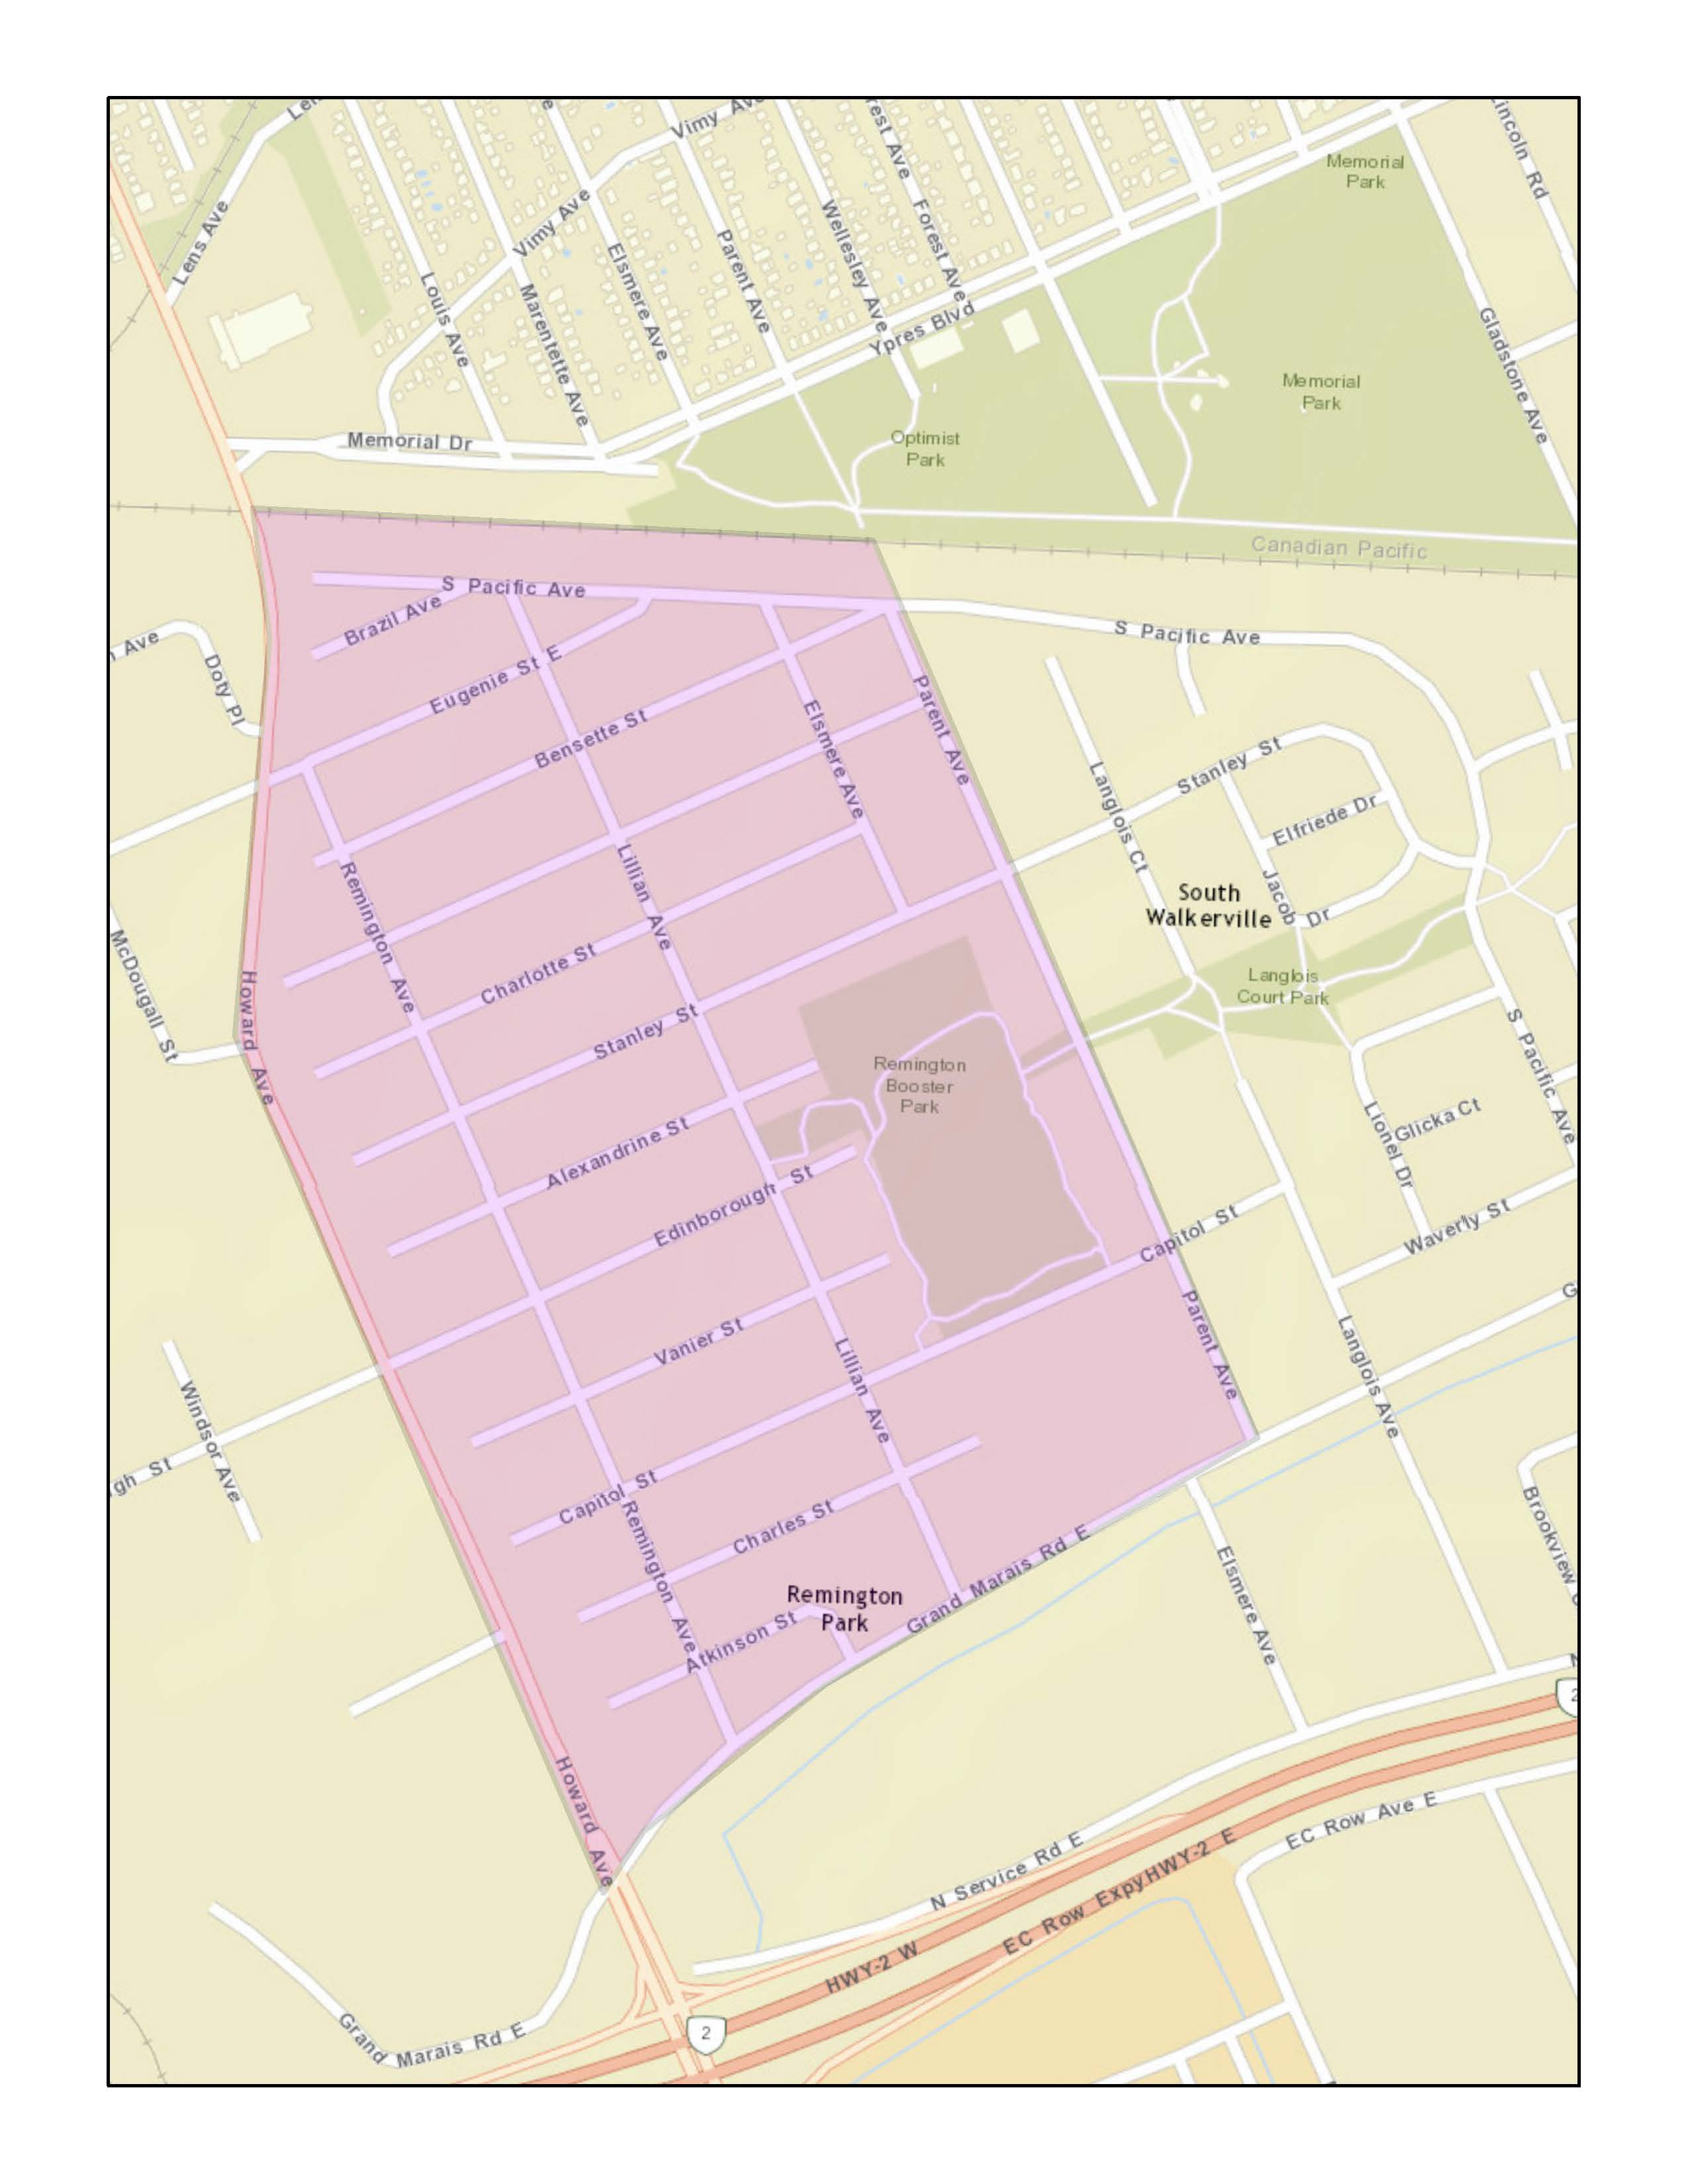 Remington Park Study Area: Within the boundaries of Parent Ave., Grand Marais Rd E., Howard Ave., and S Pacific Ave.